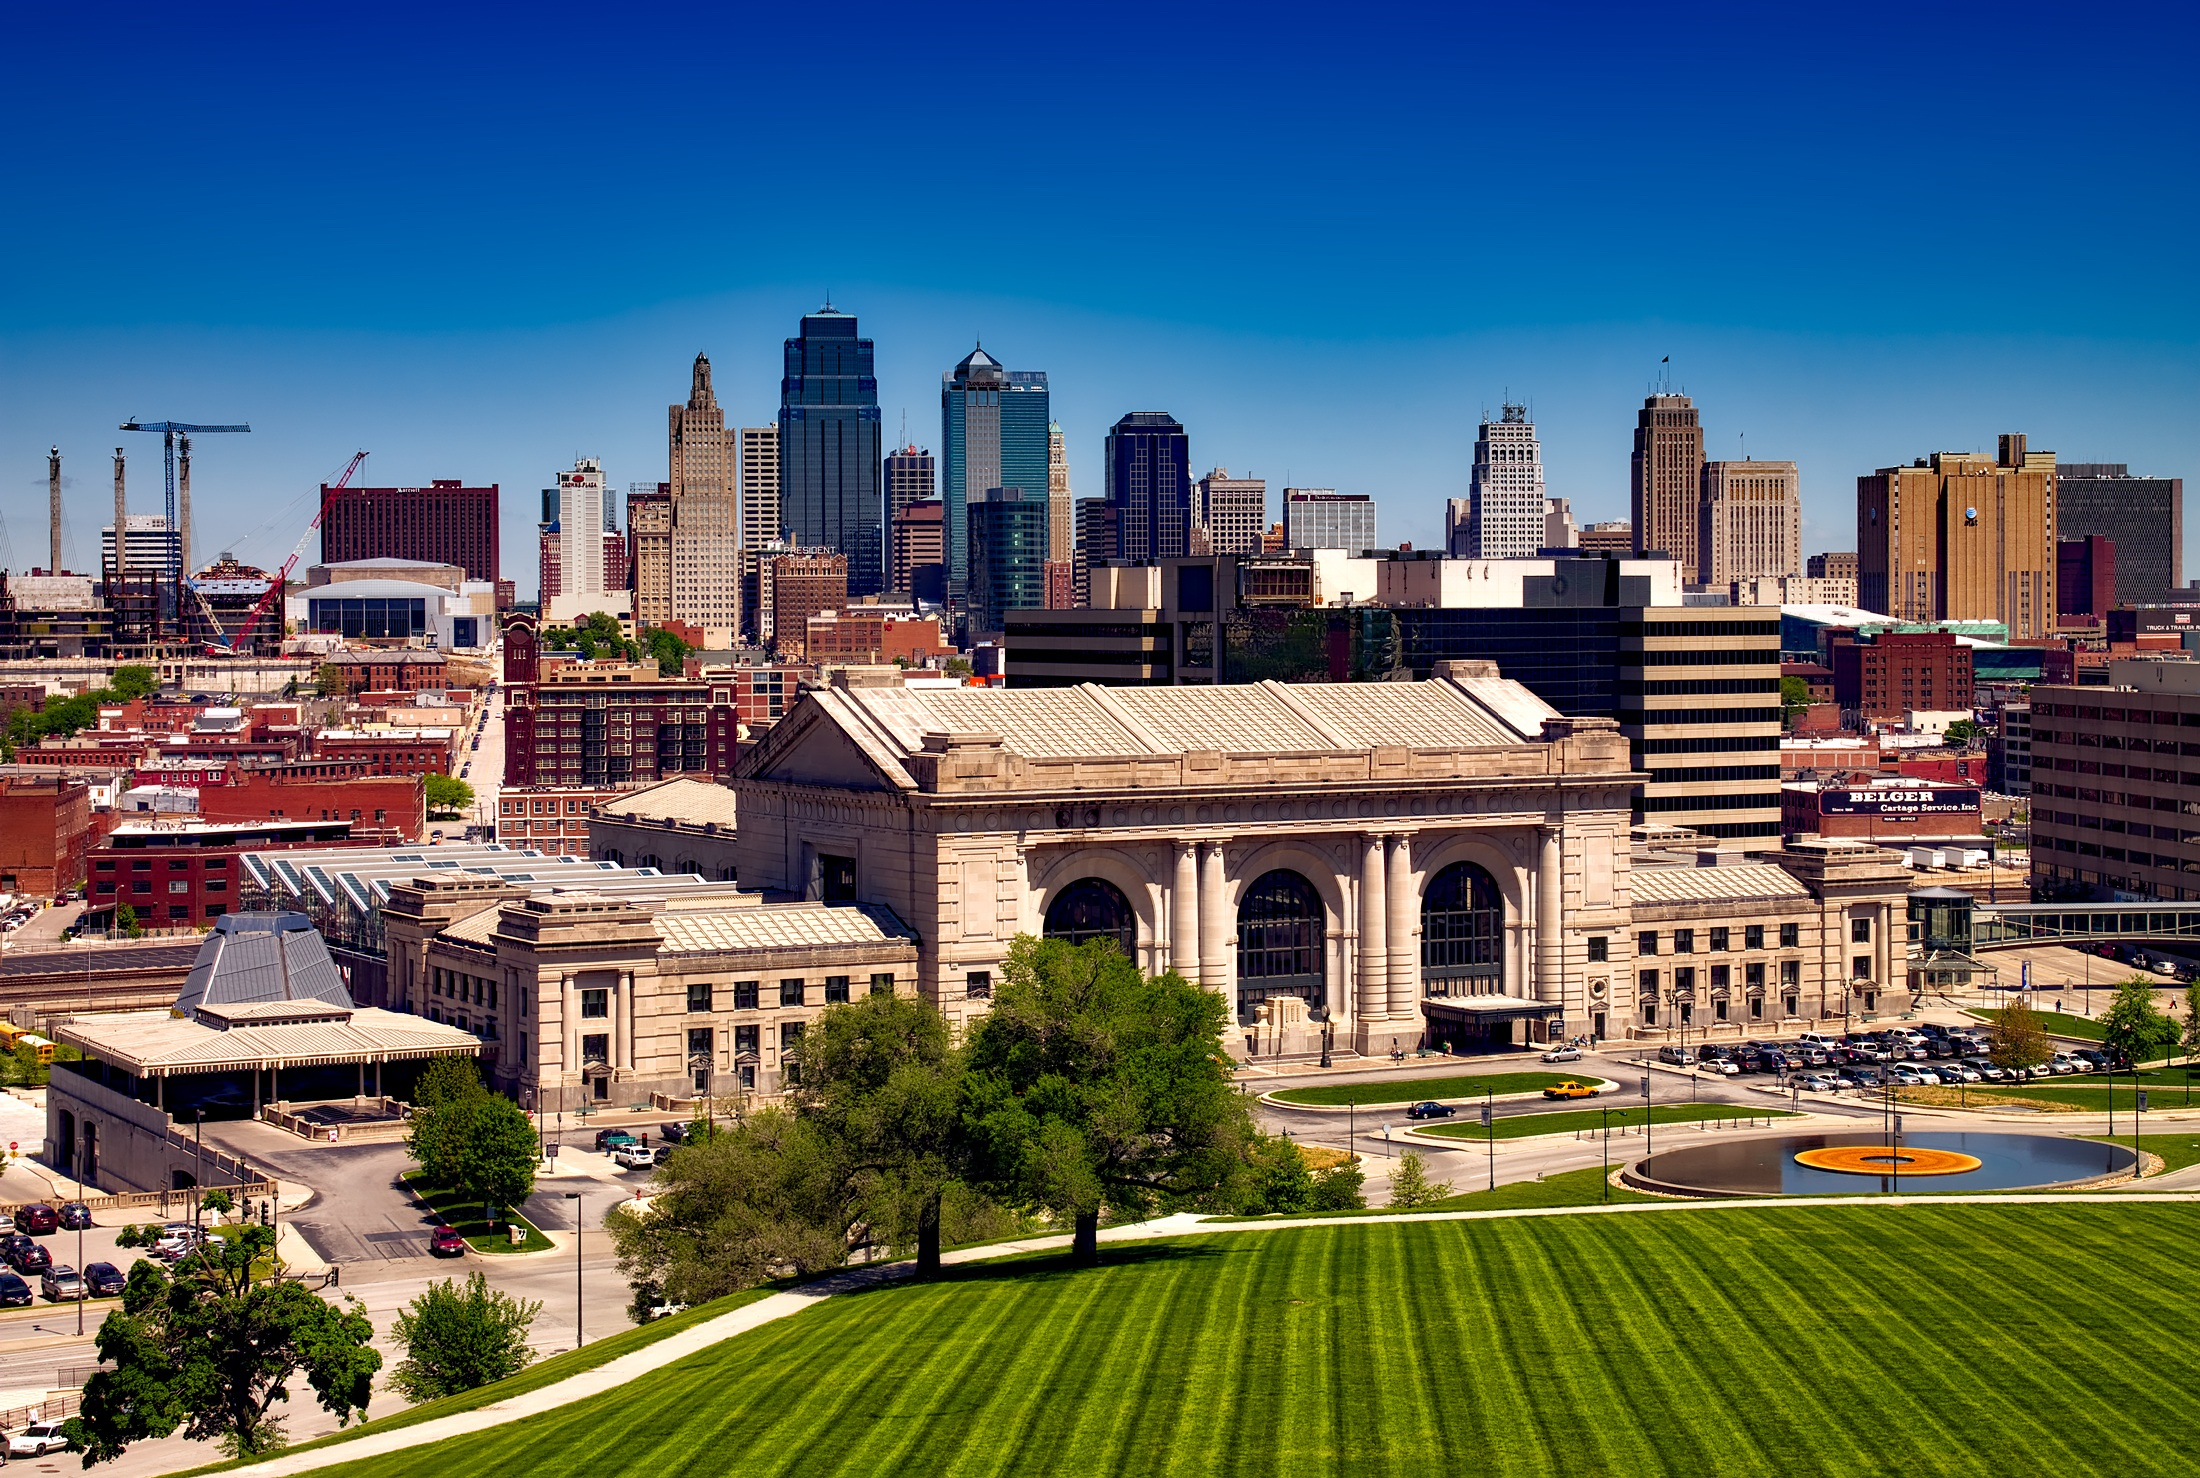 Free stock photo of city, landmark, skyline, field